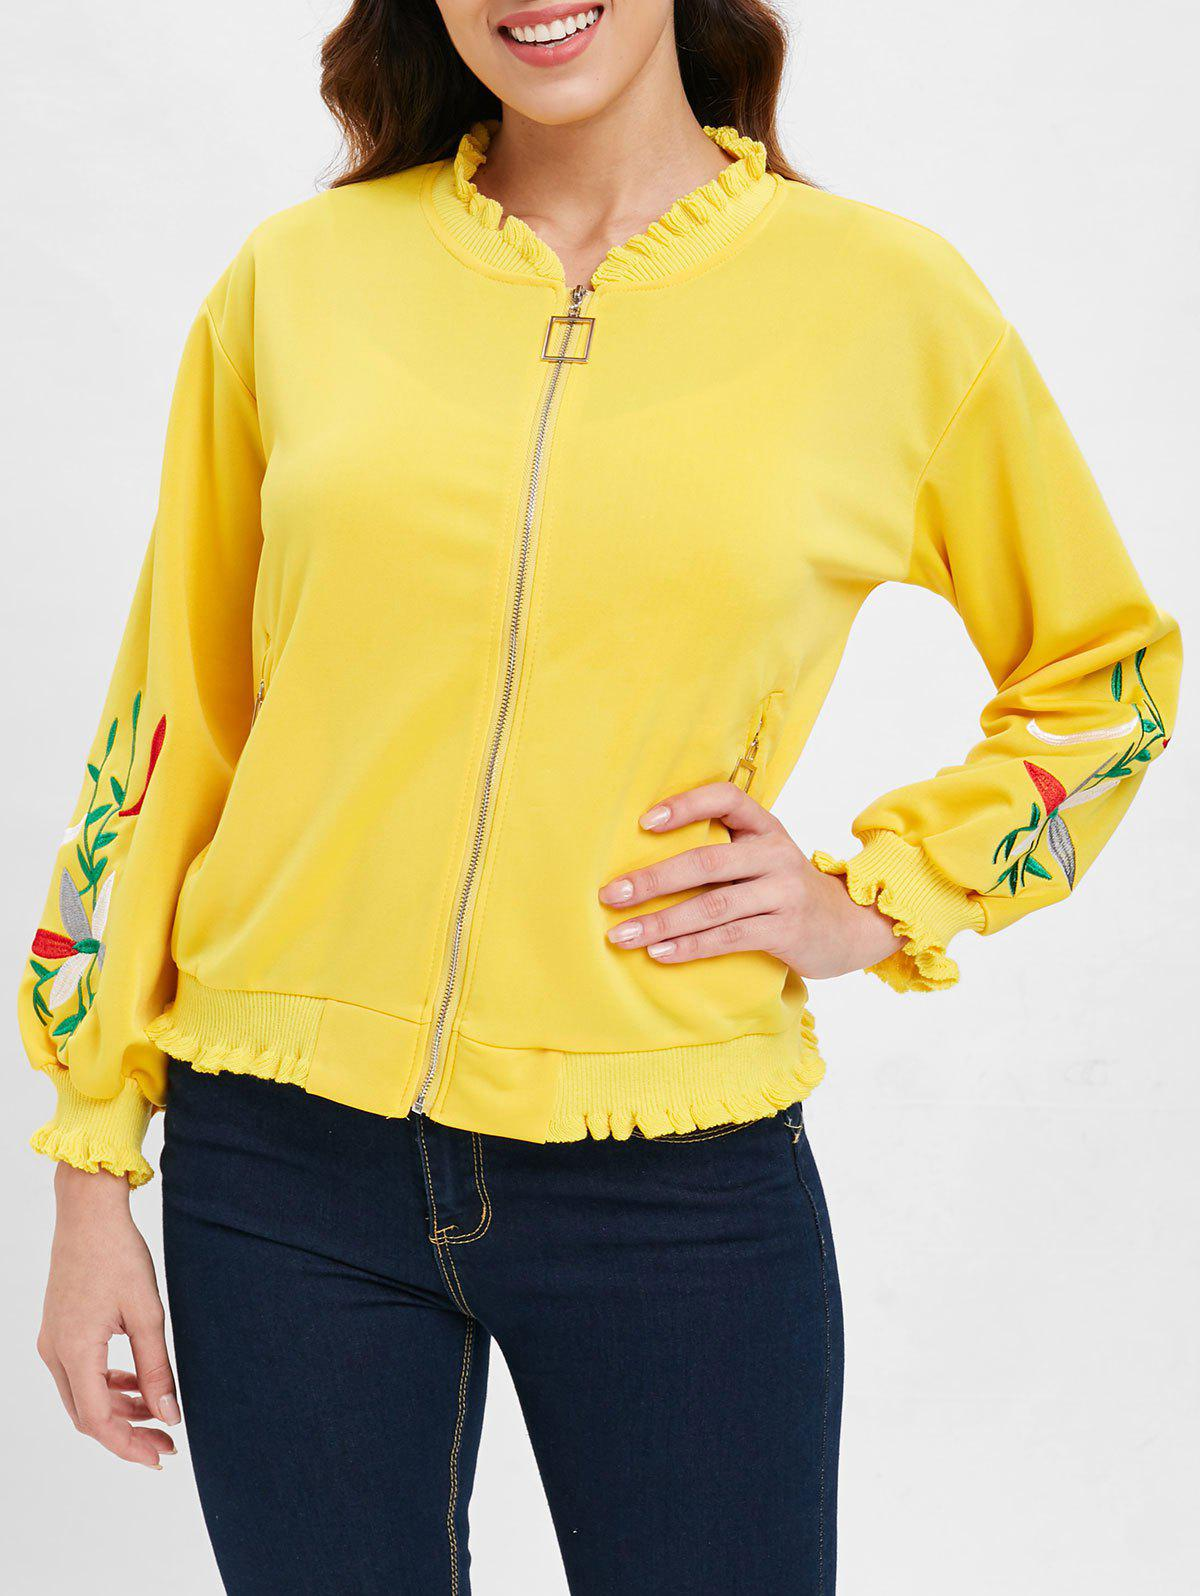 Floral Embroidered Ruffles Jacket with Zipper Fly - YELLOW L